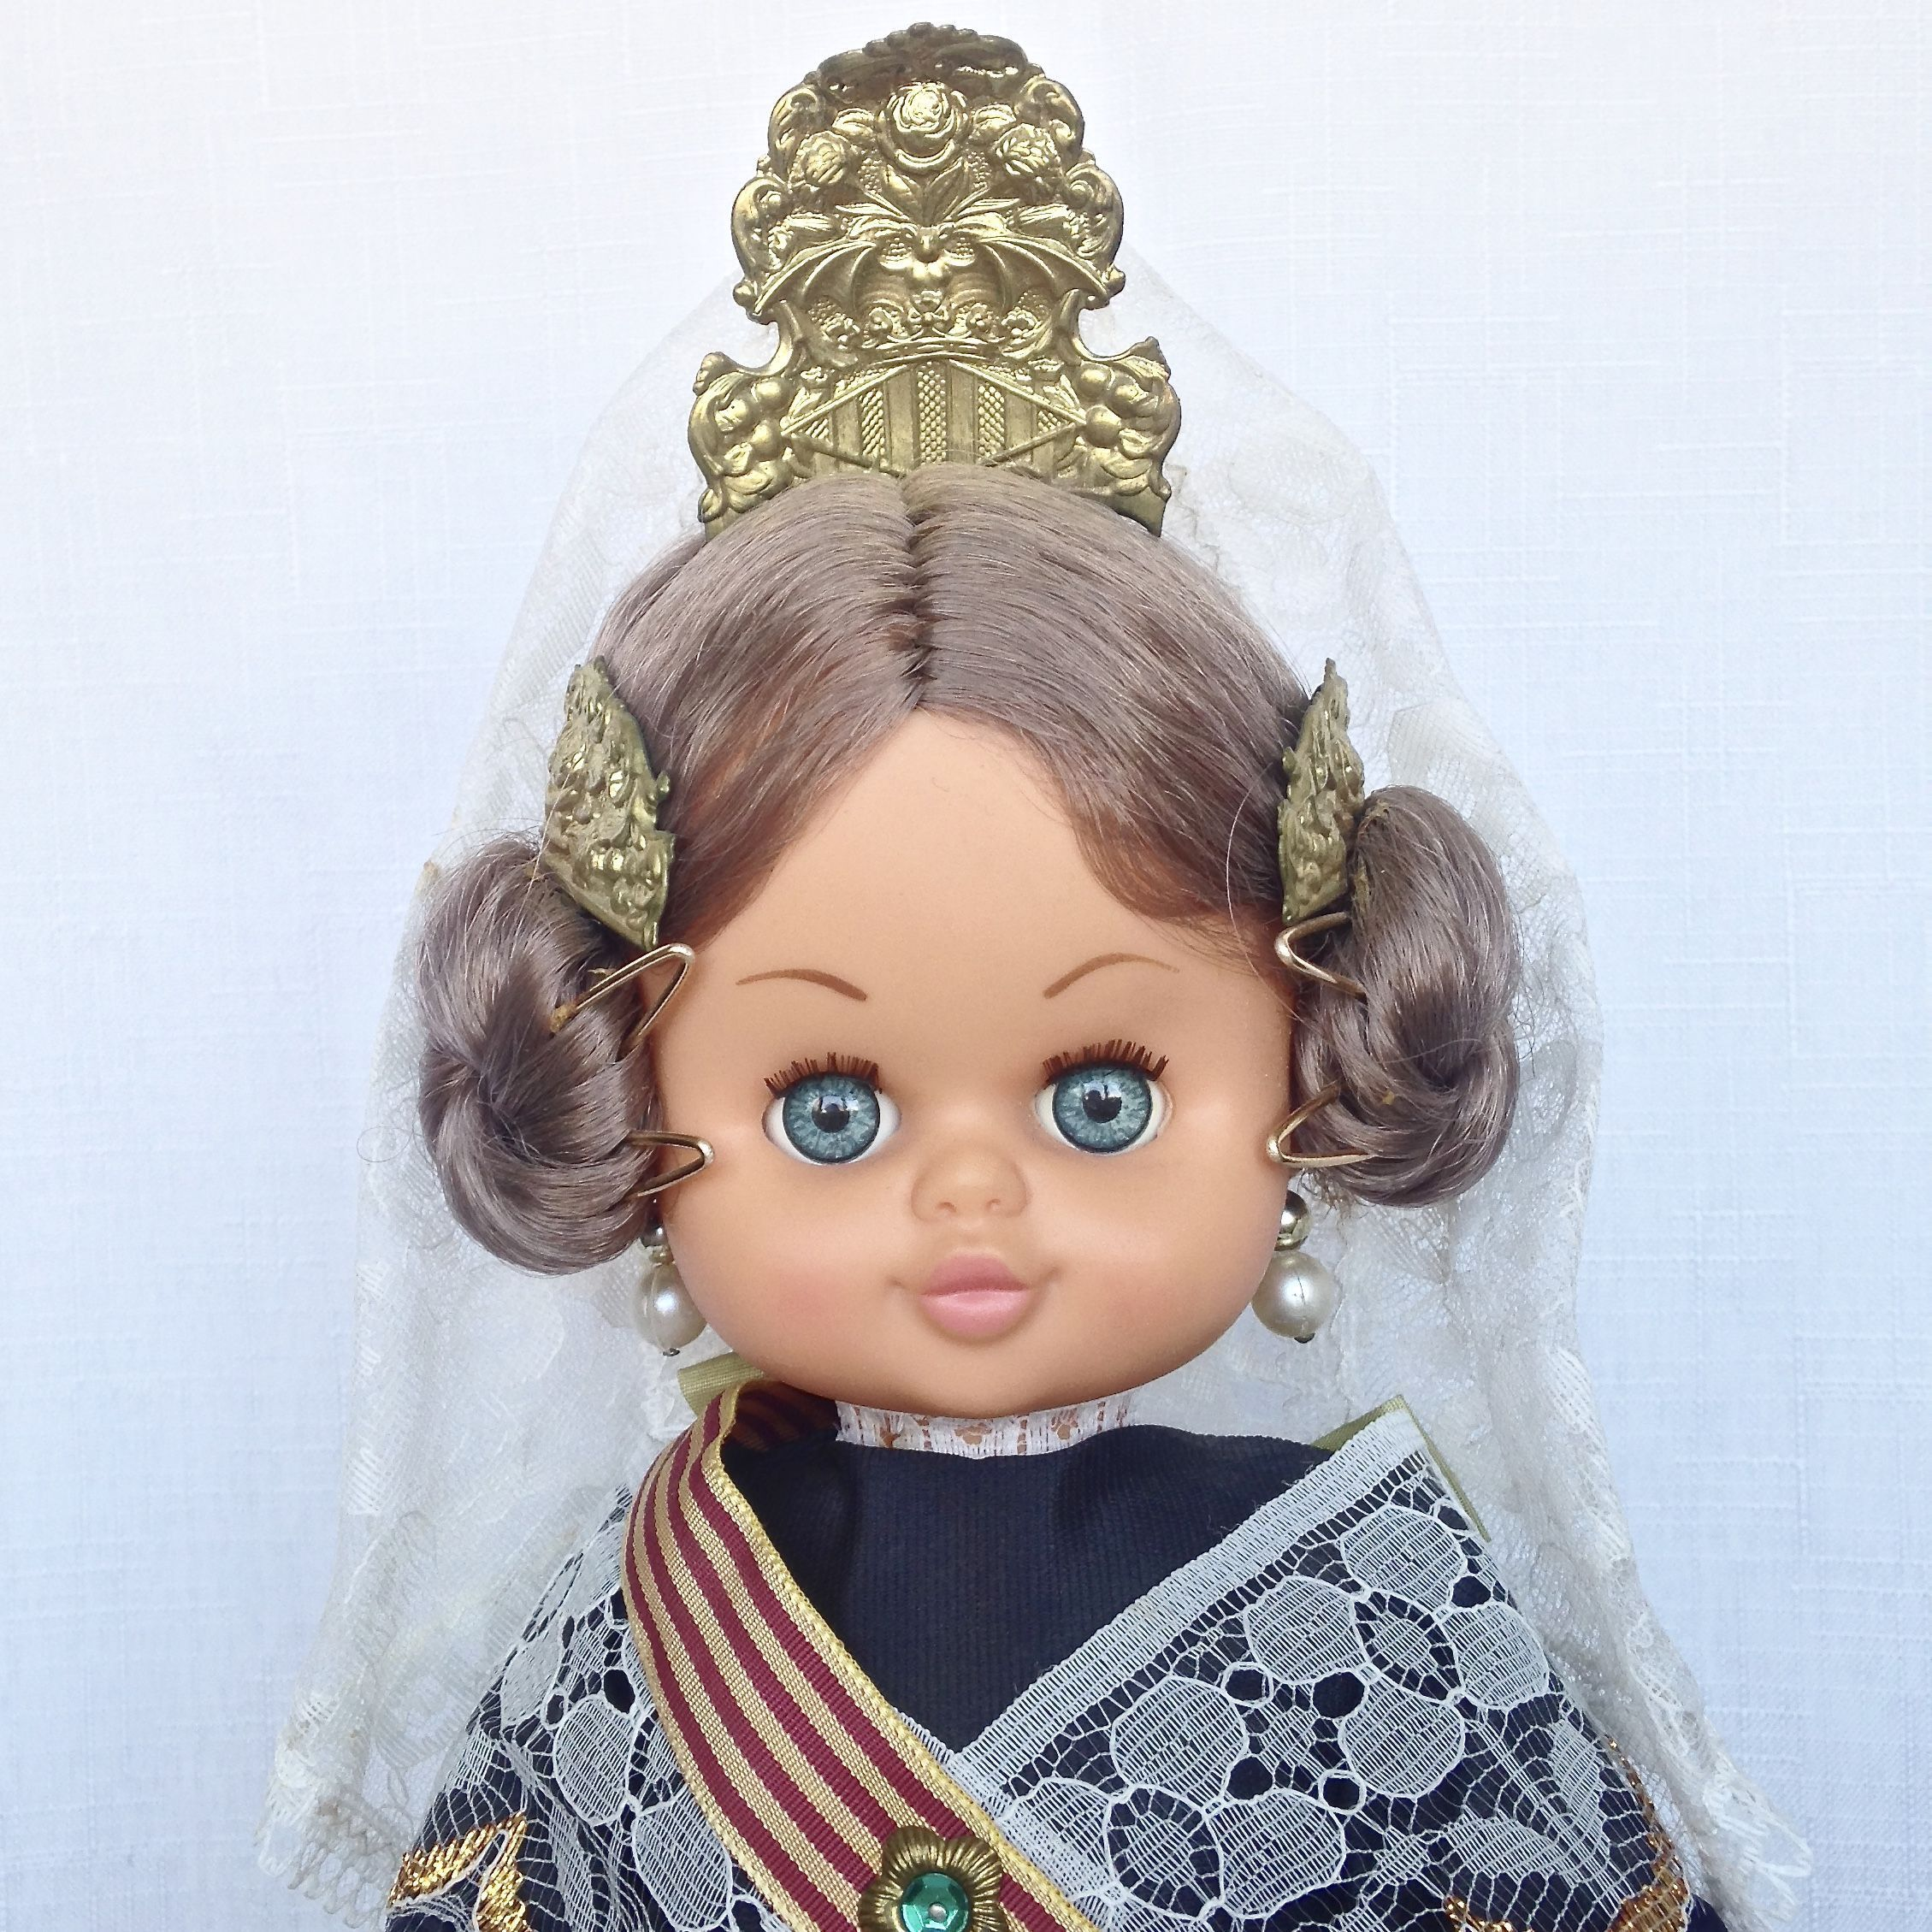 Fabulous Vintage 1970s Spanish Doll SINTRA by BERJUSA in Folk Regional Costume - Original Outfit & Accessories by Folk Artesania - Collector #spanishdolls Fabulous Vintage 1970s Spanish Doll SINTRA by BERJUSA in Folk Regional Costume - Original Outfit & Accessories by Folk Artesania - Collectors #spanishdolls Fabulous Vintage 1970s Spanish Doll SINTRA by BERJUSA in Folk Regional Costume - Original Outfit & Accessories by Folk Artesania - Collector #spanishdolls Fabulous Vintage 1970s Spanish Dol #spanishdolls